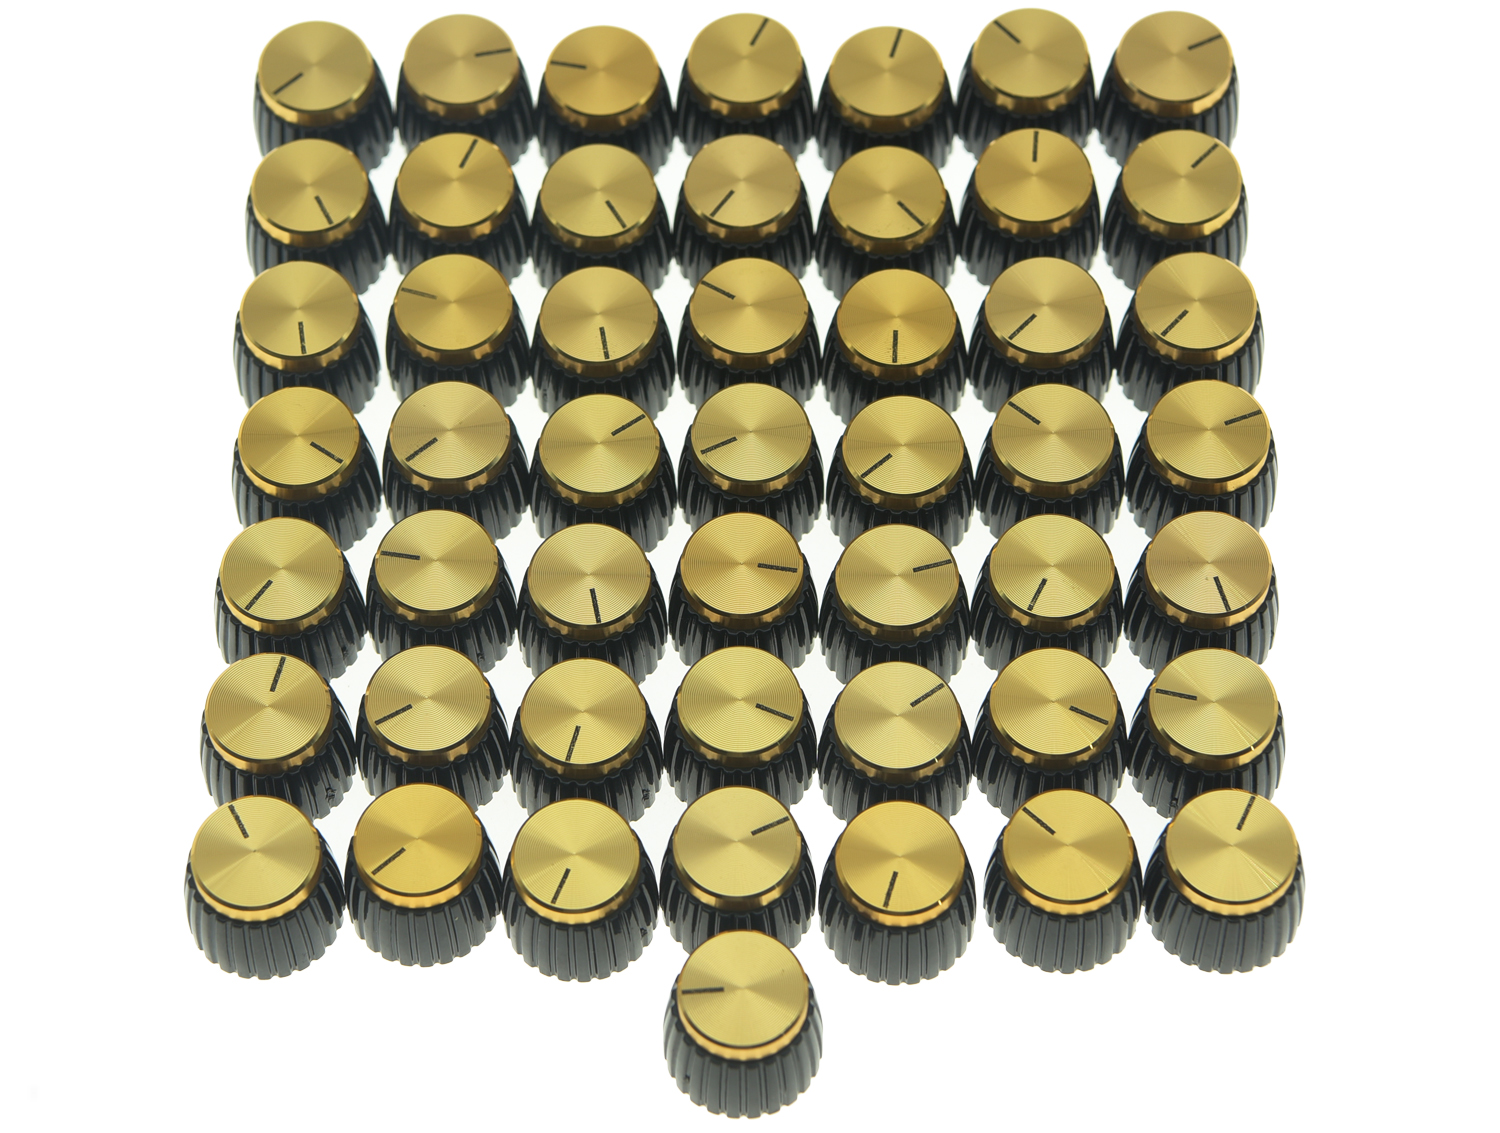 3 Guitar AMP Amplifier Knobs Black w//Gold Cap Push On BIG QTY DISCOUNT Marshall